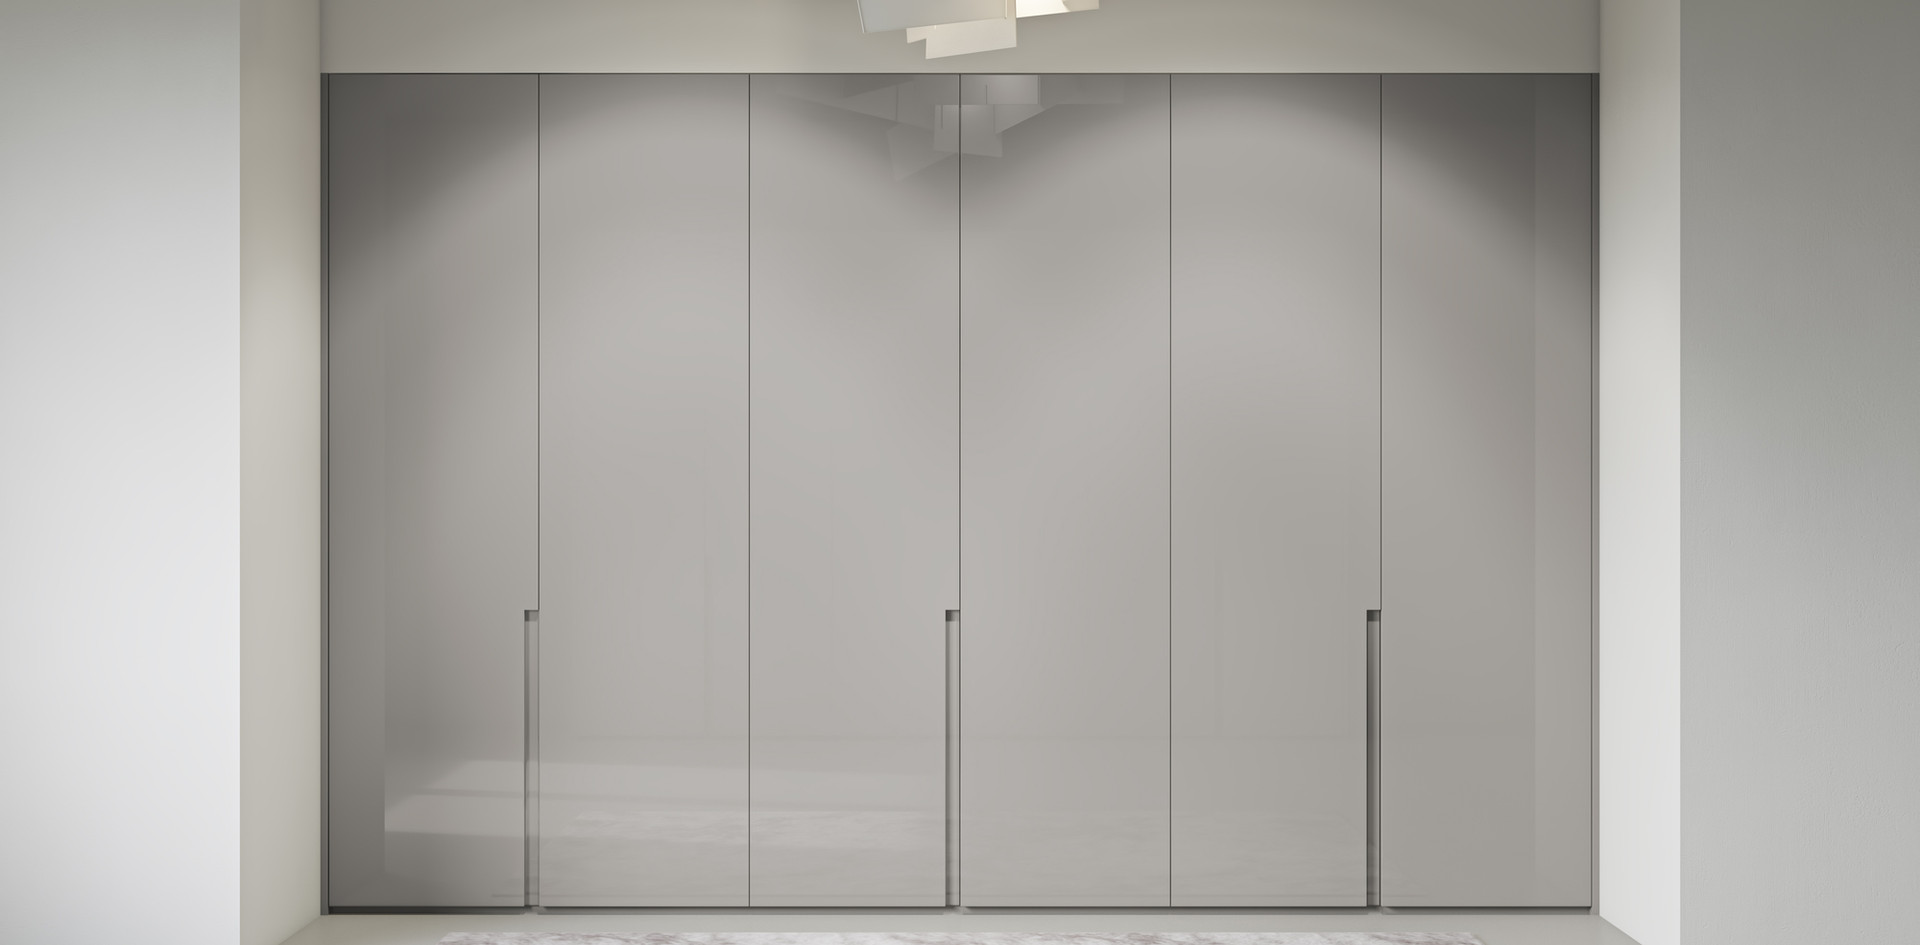 Bespoke Lacquer Fitted Wardrobe.jpg